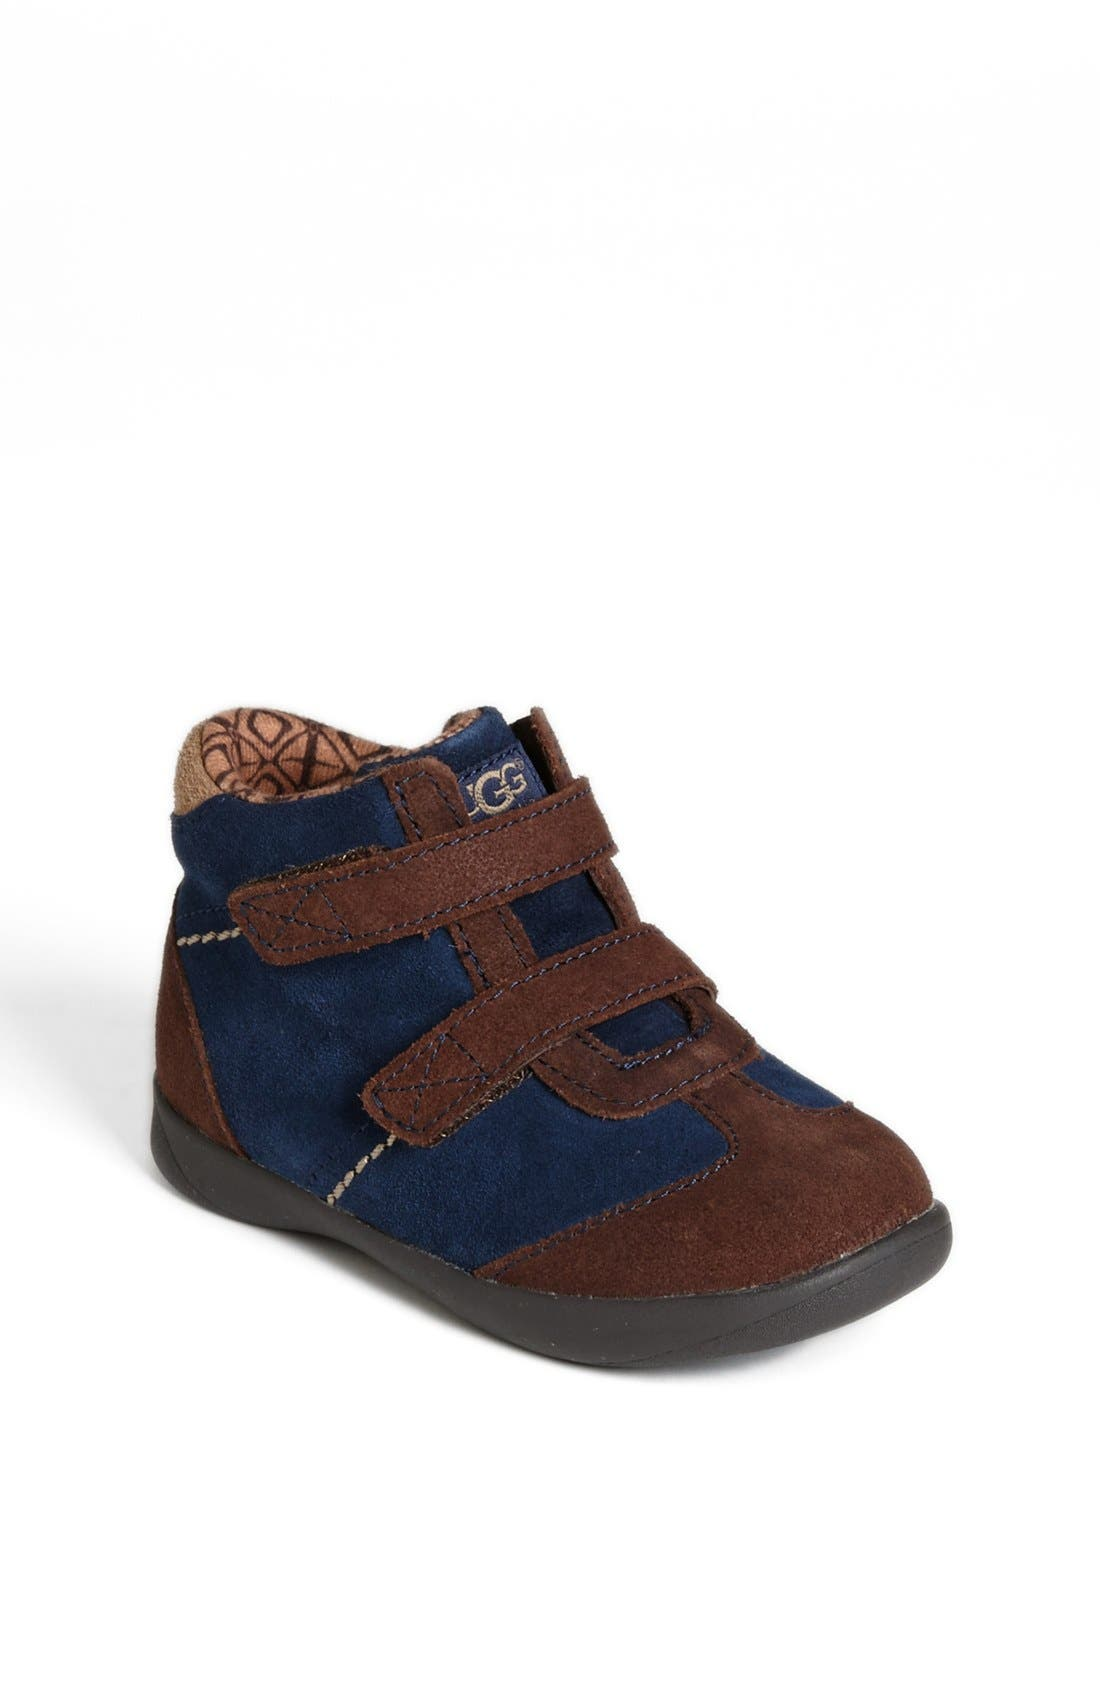 Alternate Image 1 Selected - UGG® Australia 'Speedy' High Top Sneaker (Walker & Toddler)